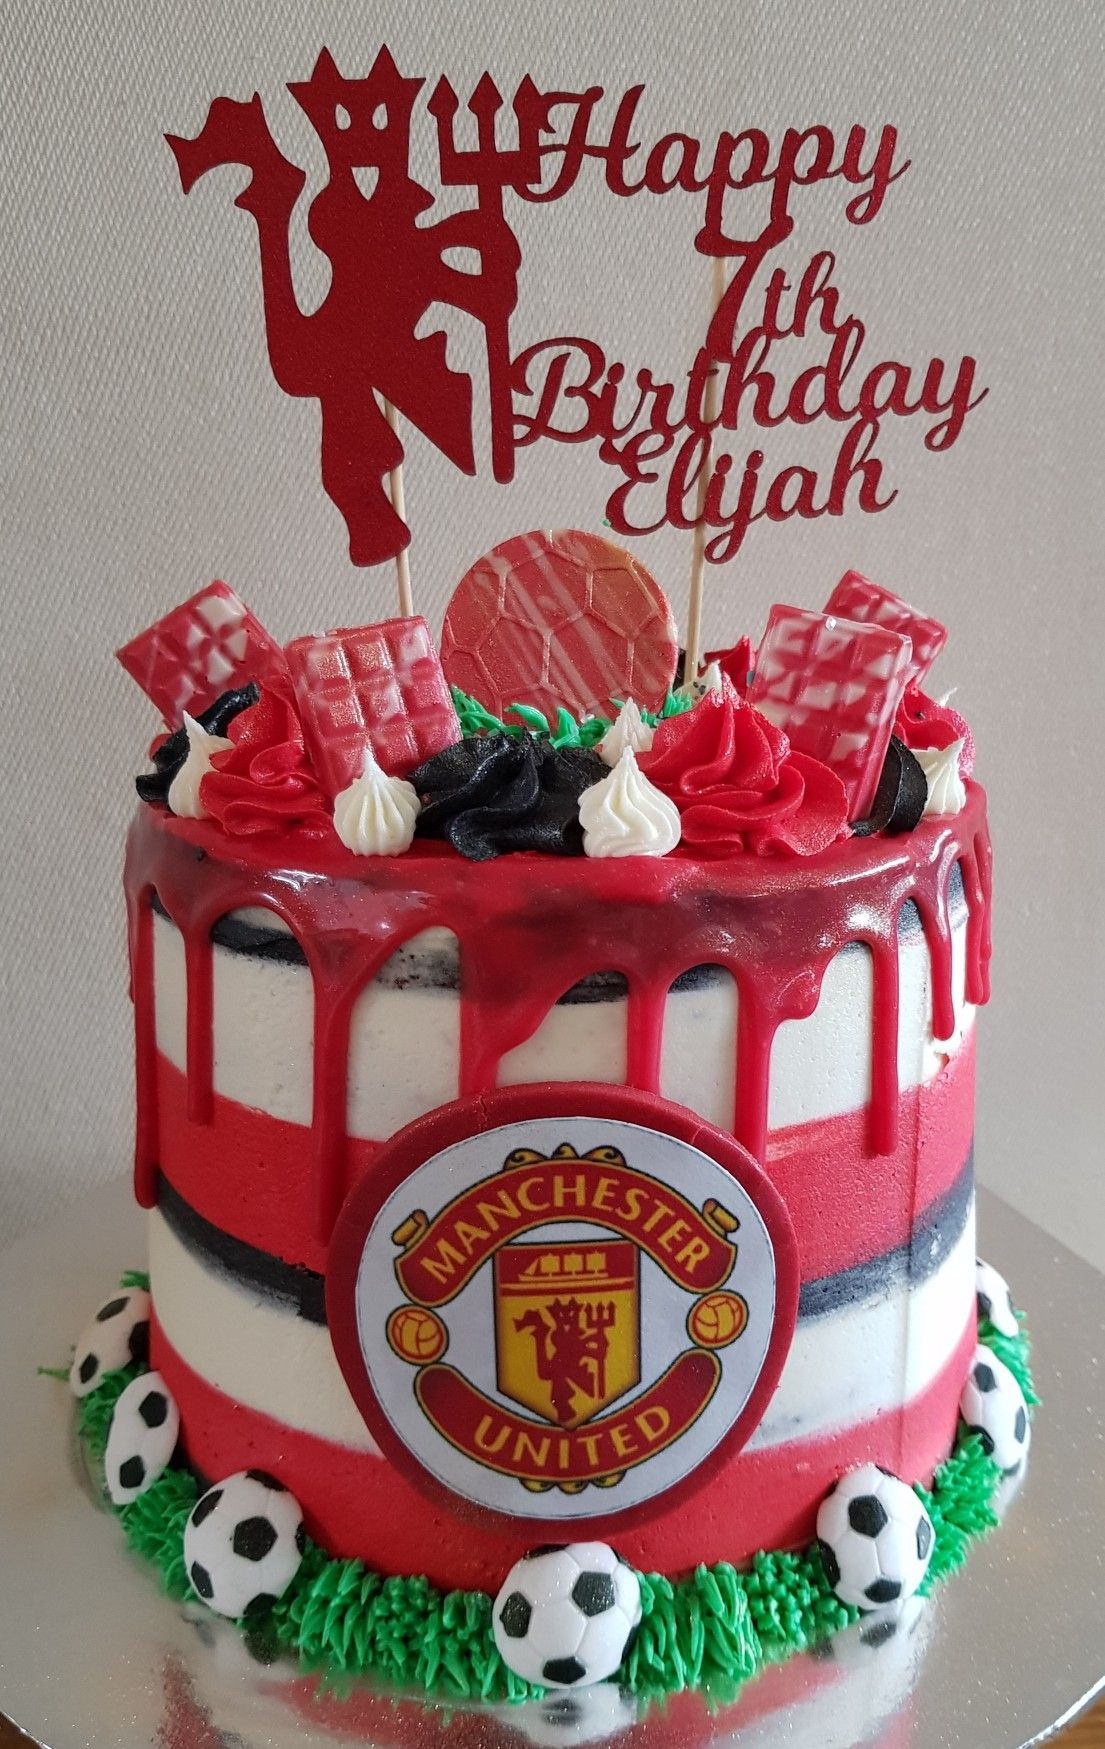 Manchester United Drip Cake Birthday Drip Cake Drip Cakes Birthday Cake For Him